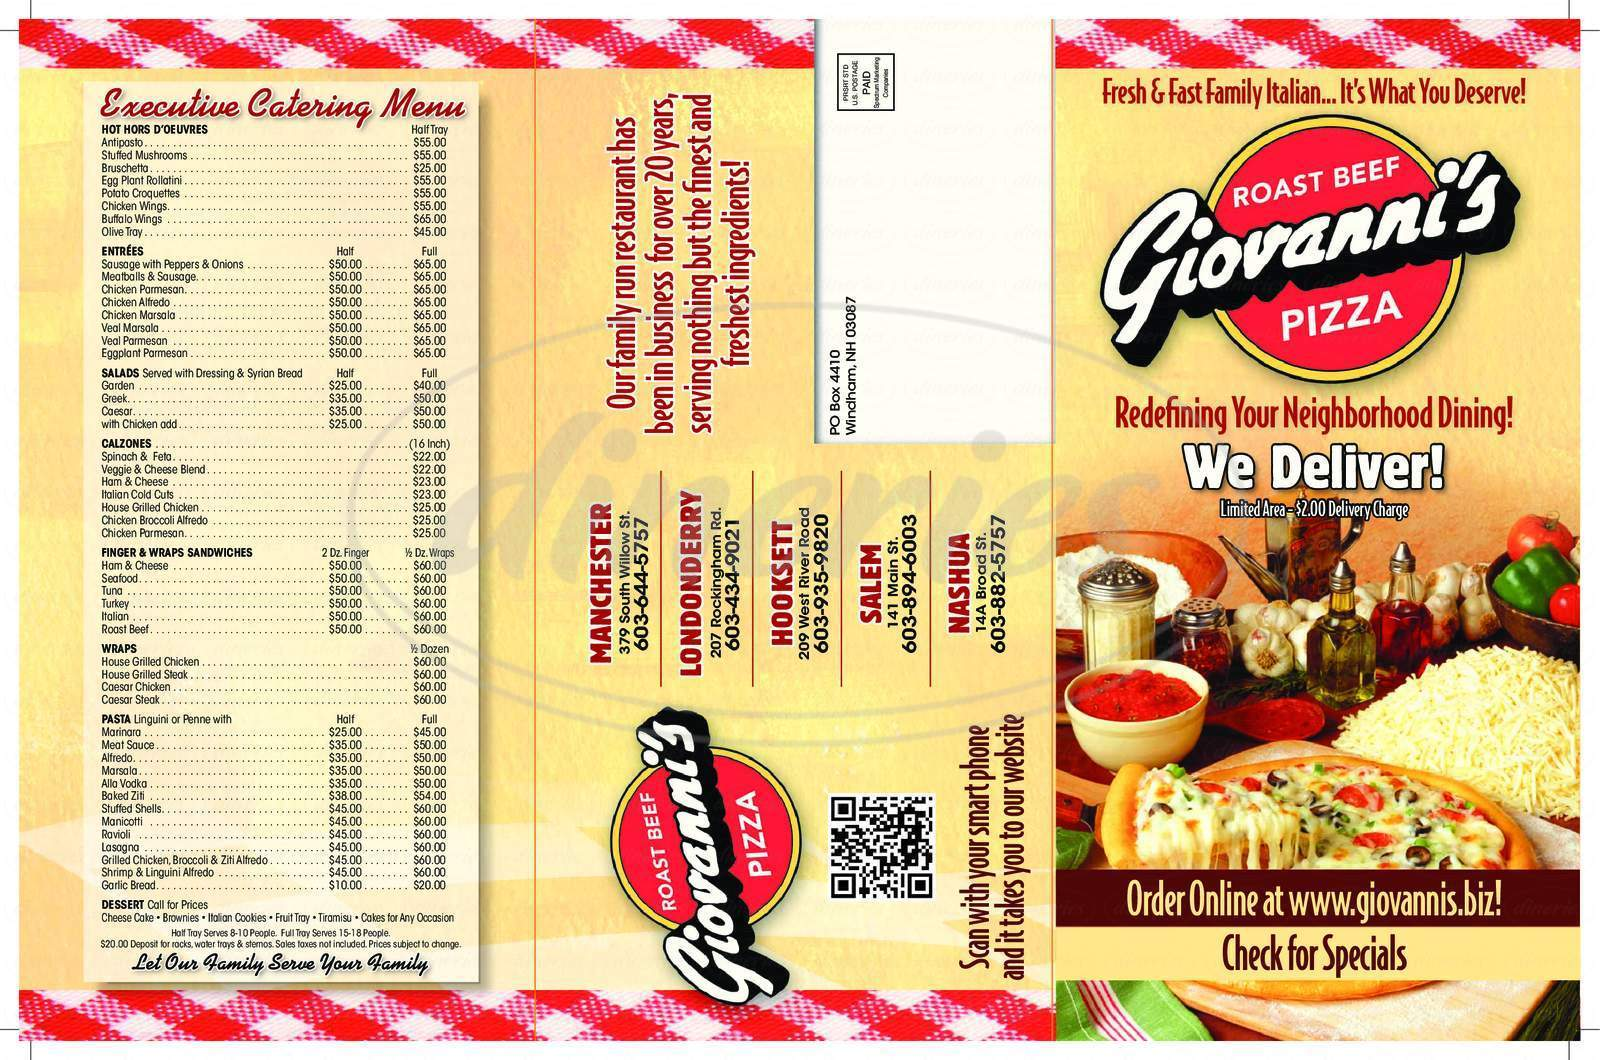 menu for Giovannis Roast Beef & Pizza